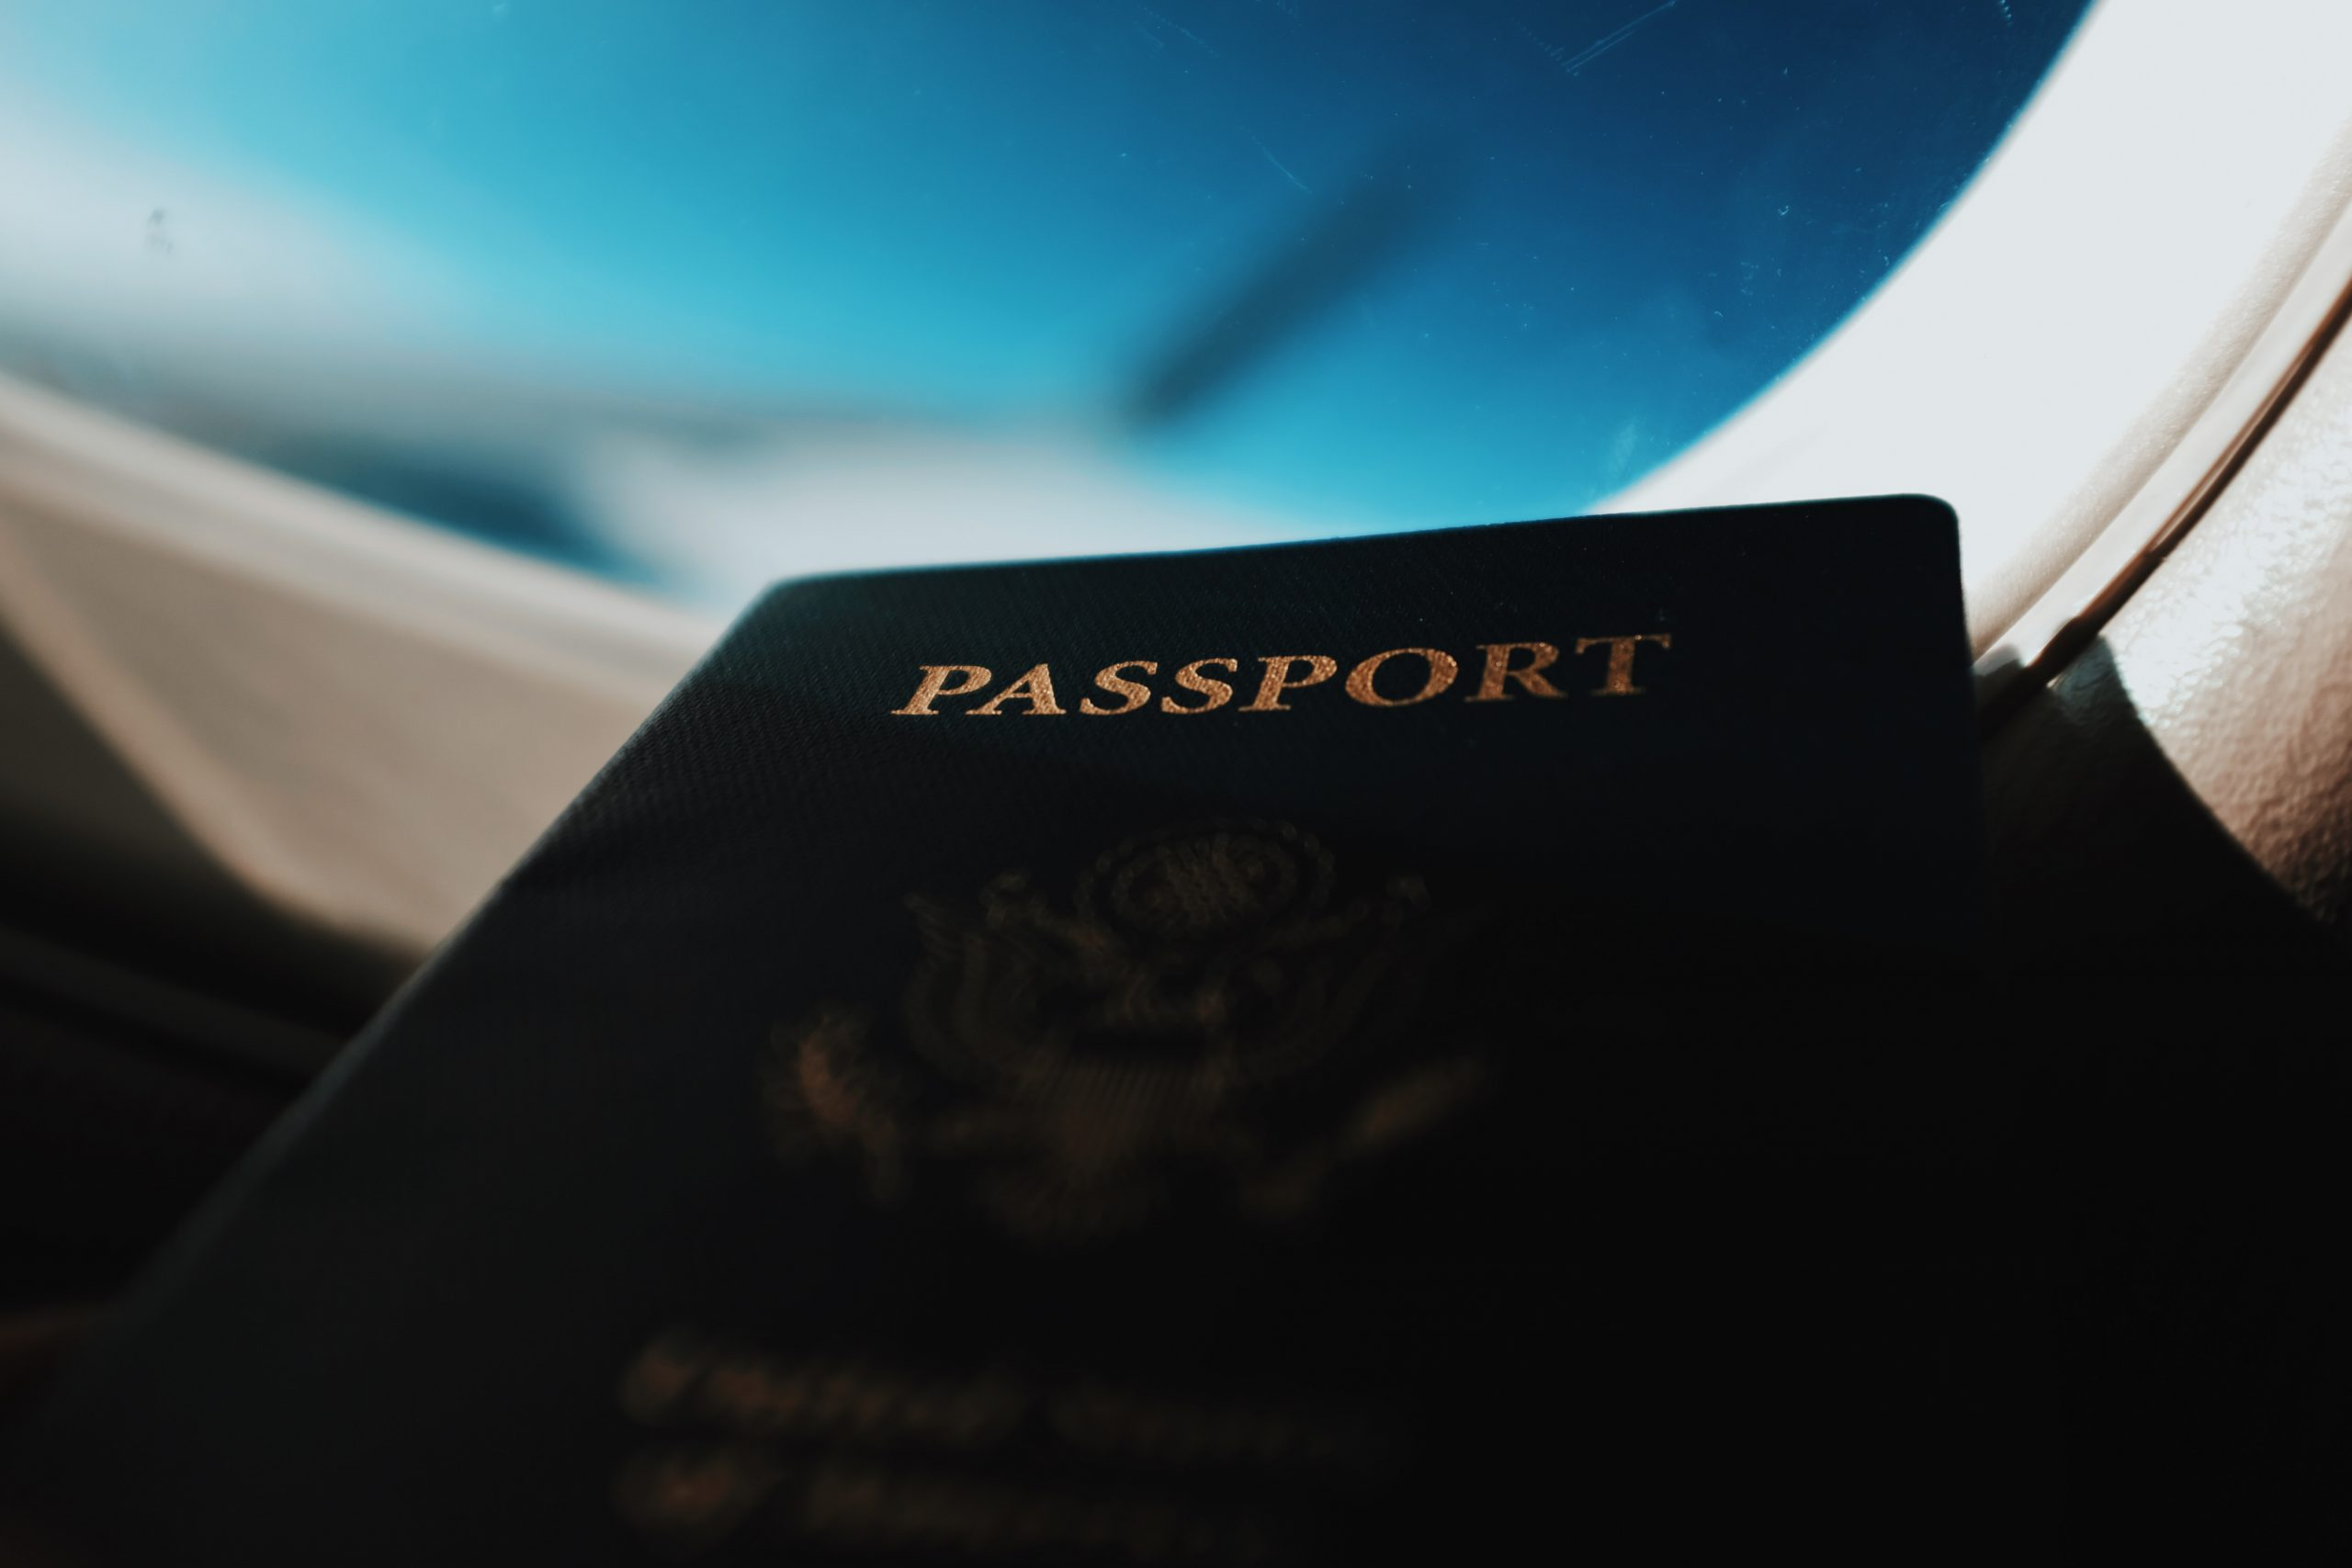 passport demand